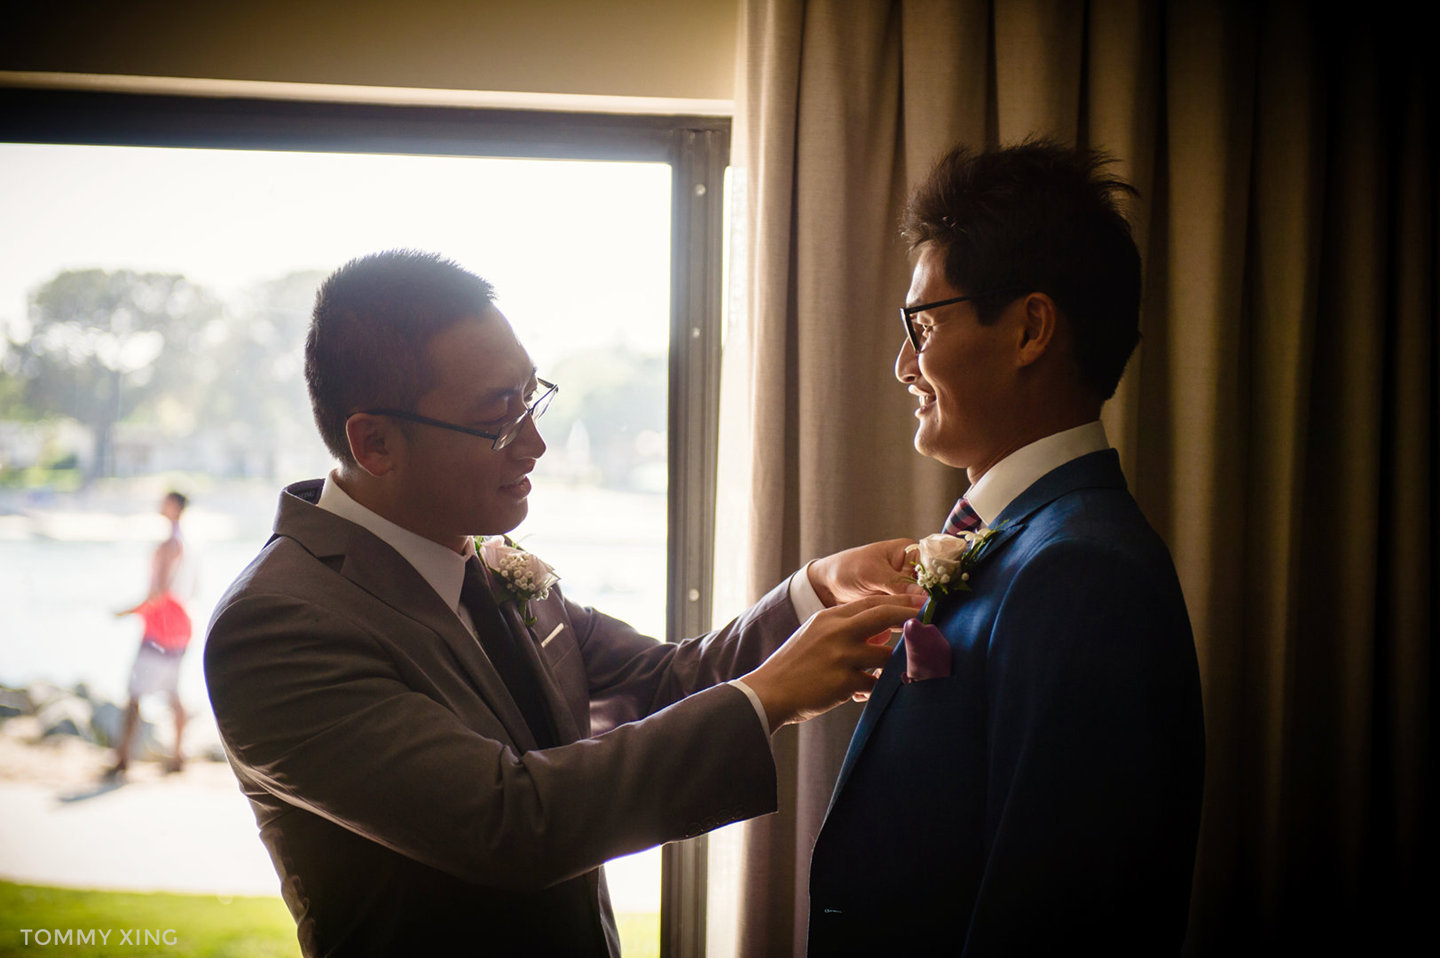 Paradise Point Resort Wedding Xiaolu & Bin San Diego 圣地亚哥婚礼摄影跟拍 Tommy Xing Photography 洛杉矶婚礼婚纱照摄影师 054.jpg